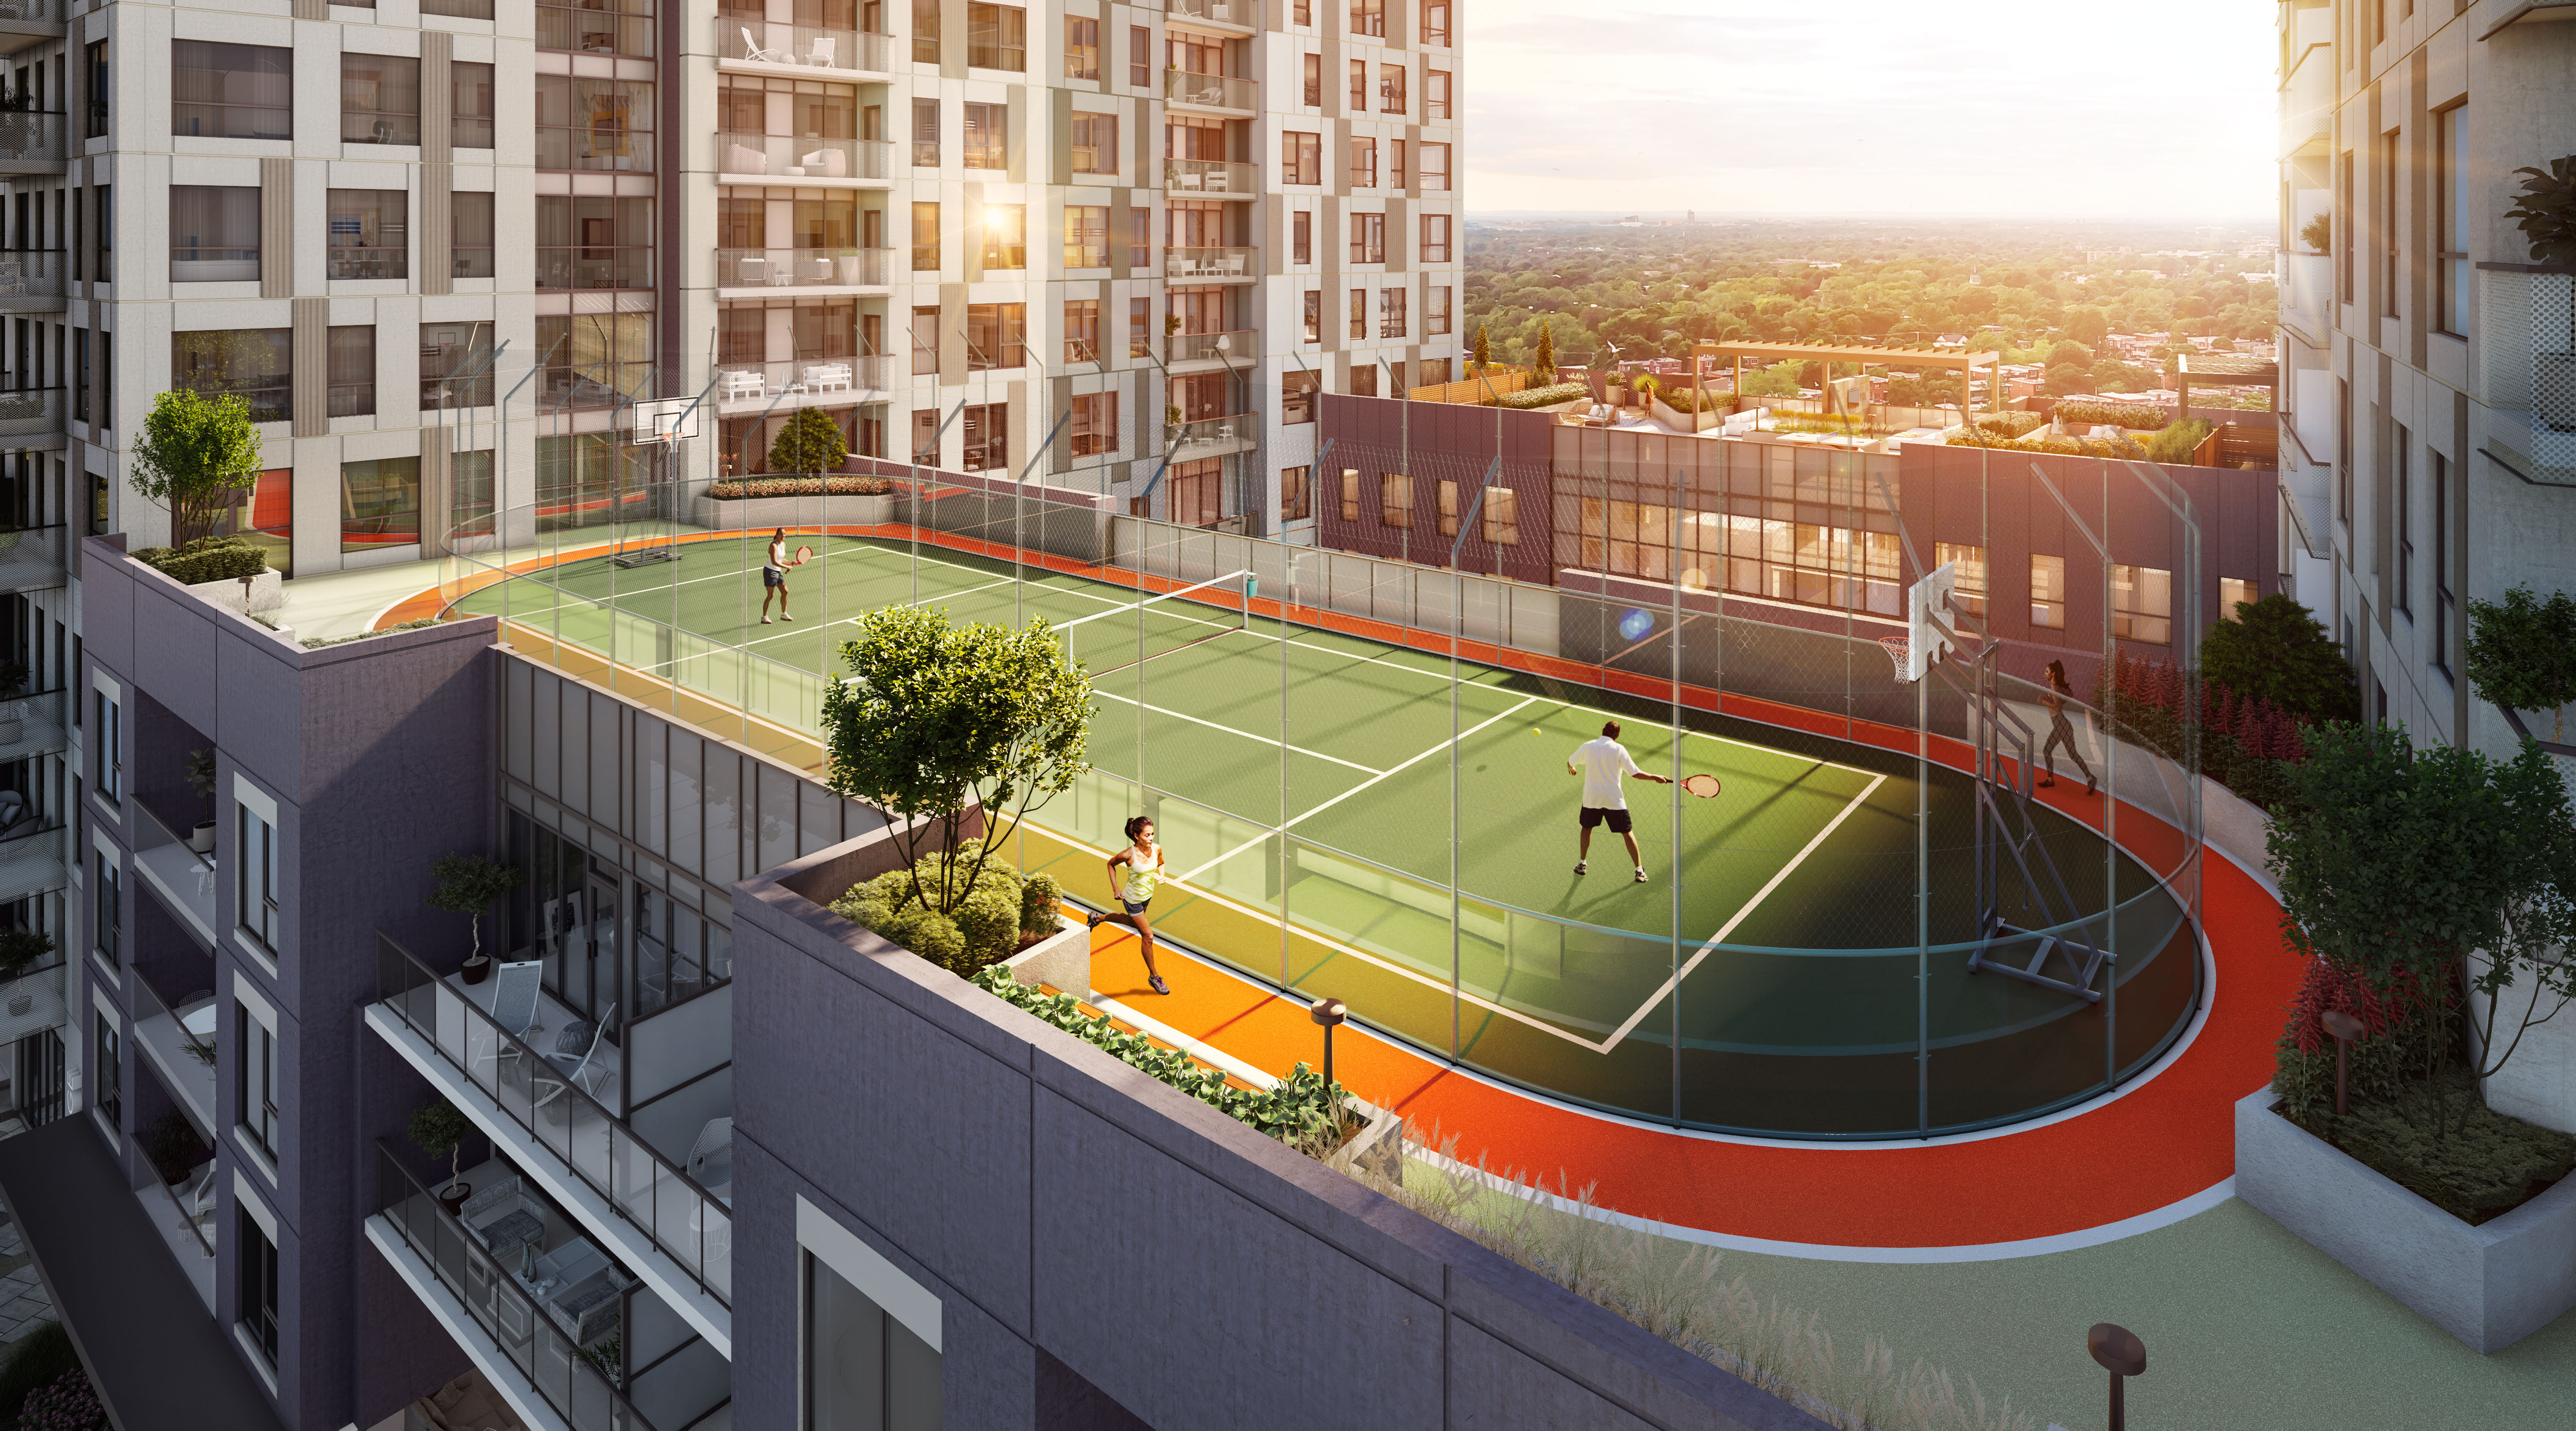 20200305_19041 1333 Weber - Colour Rendering Running Track + Tennis_low-res